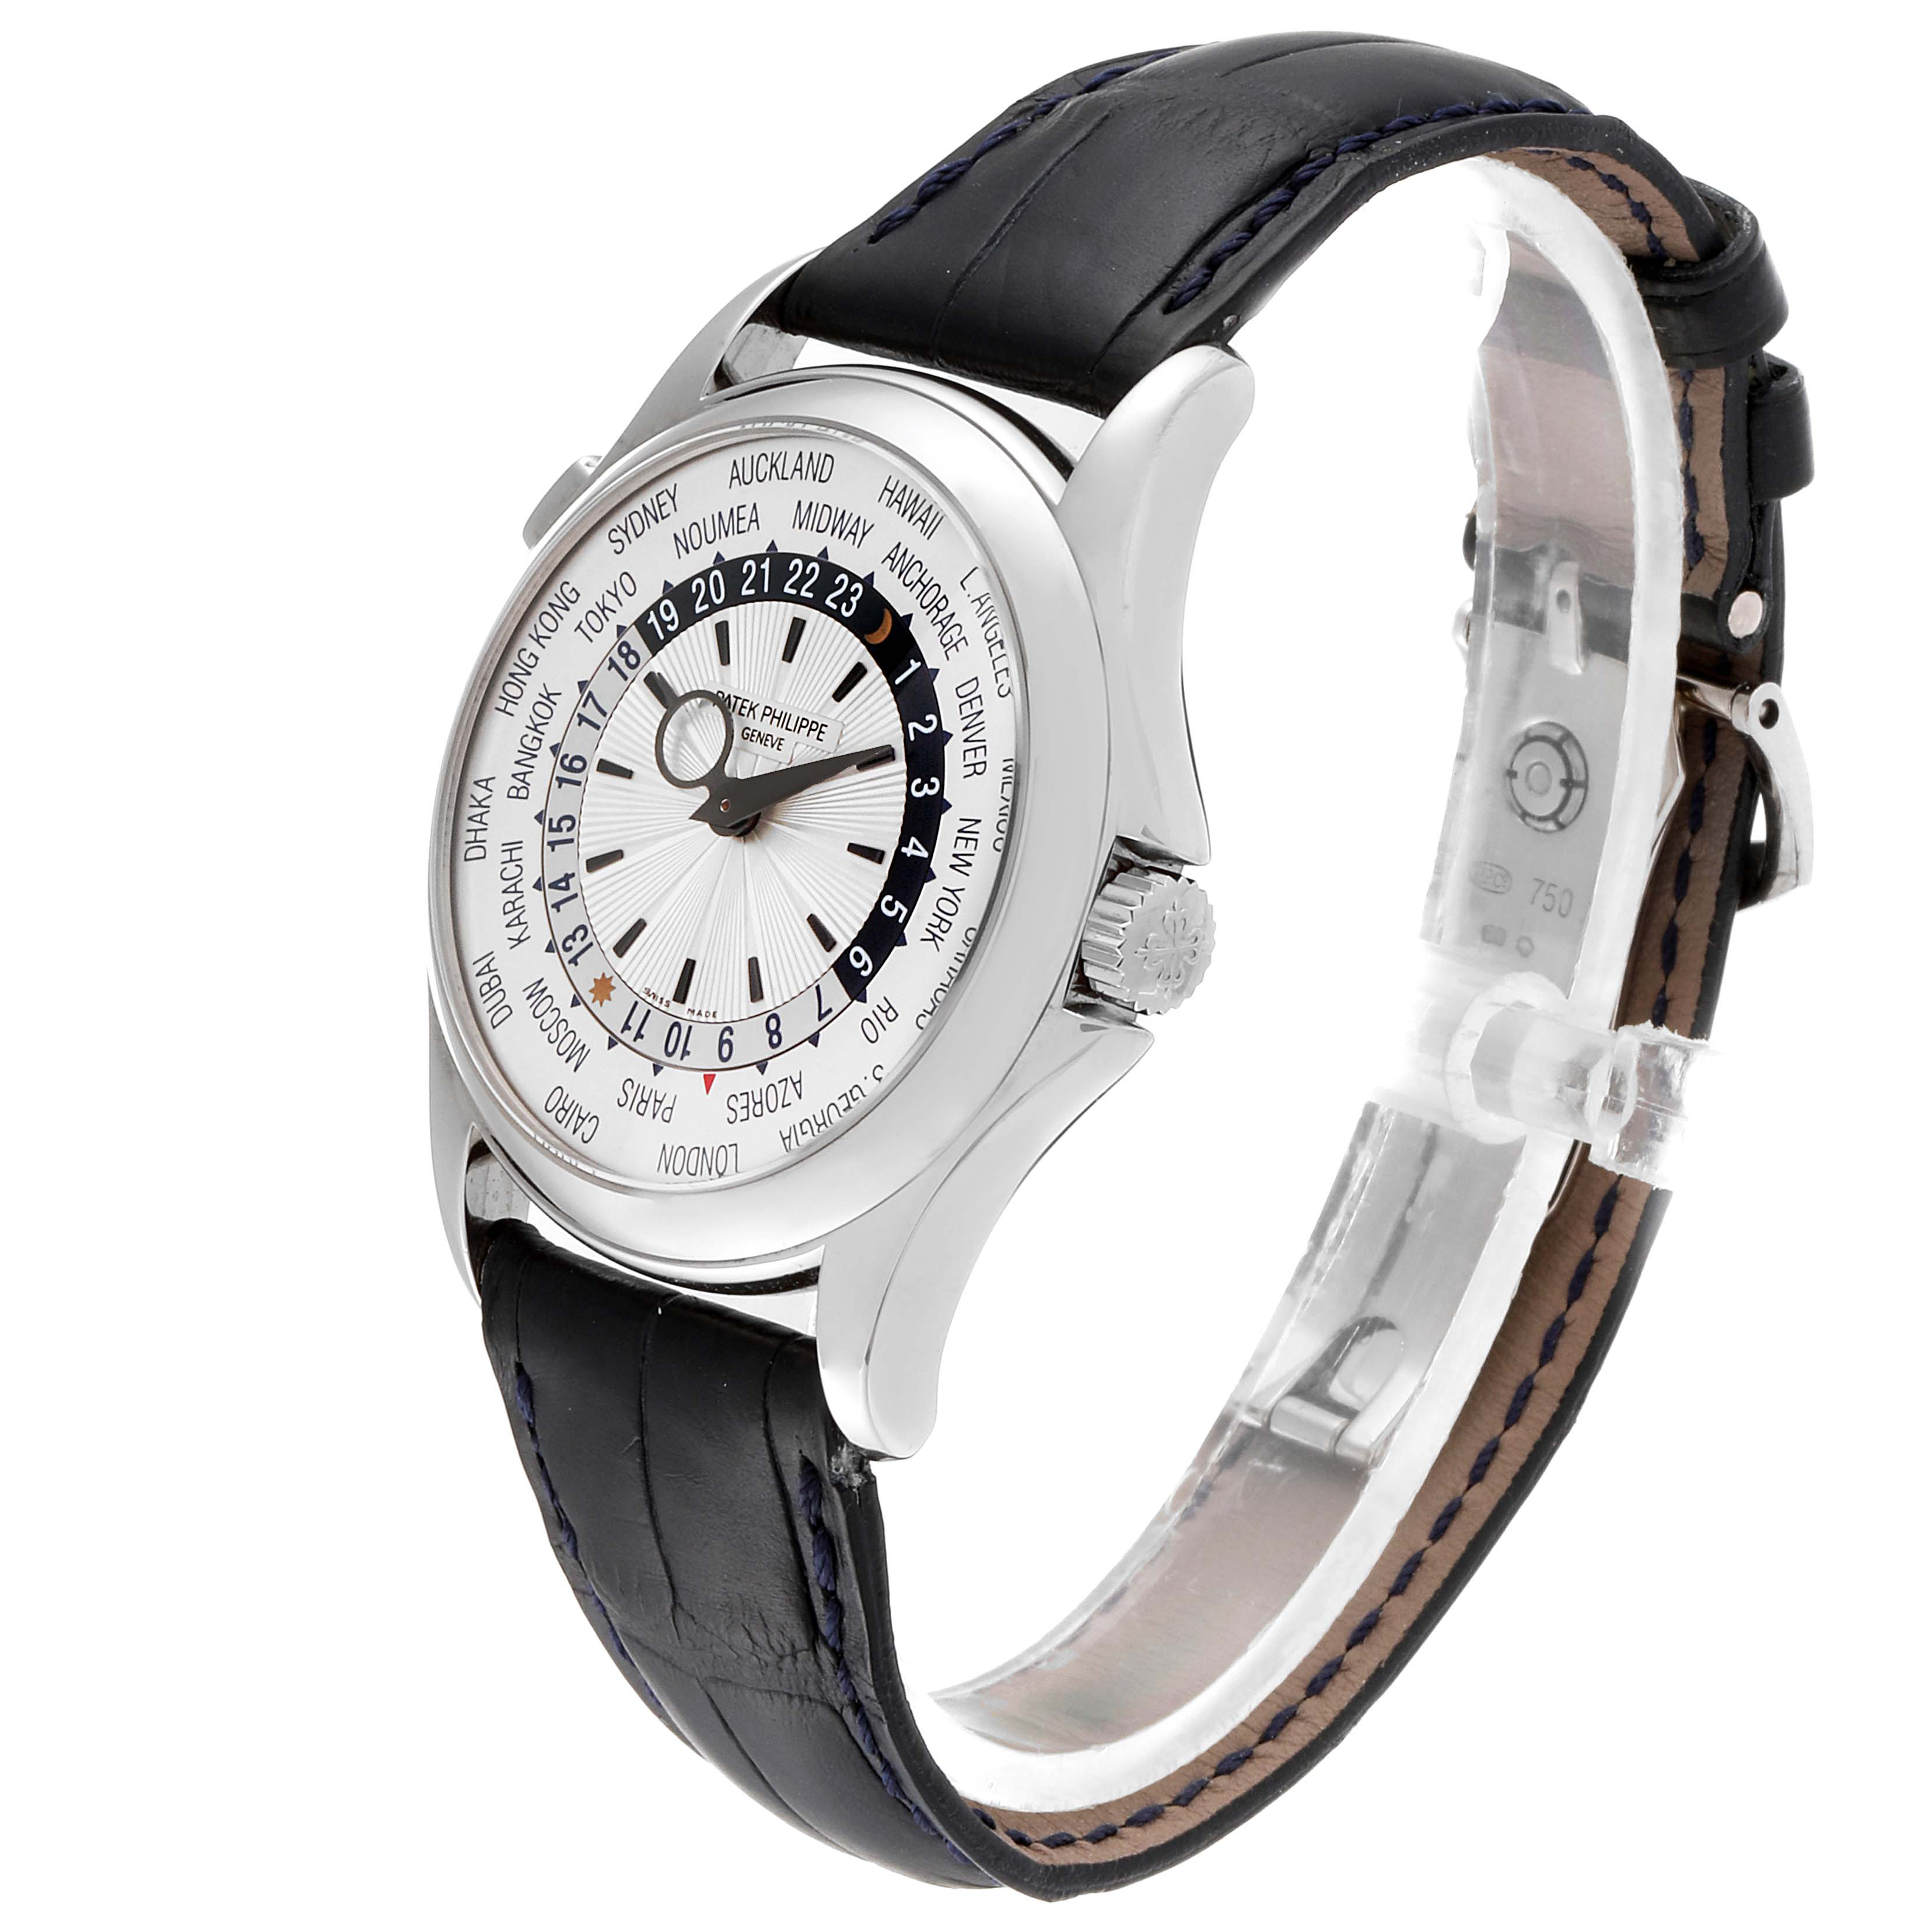 Patek Philippe World Time Complications White Gold Mens Watch 5130 SwissWatchExpo